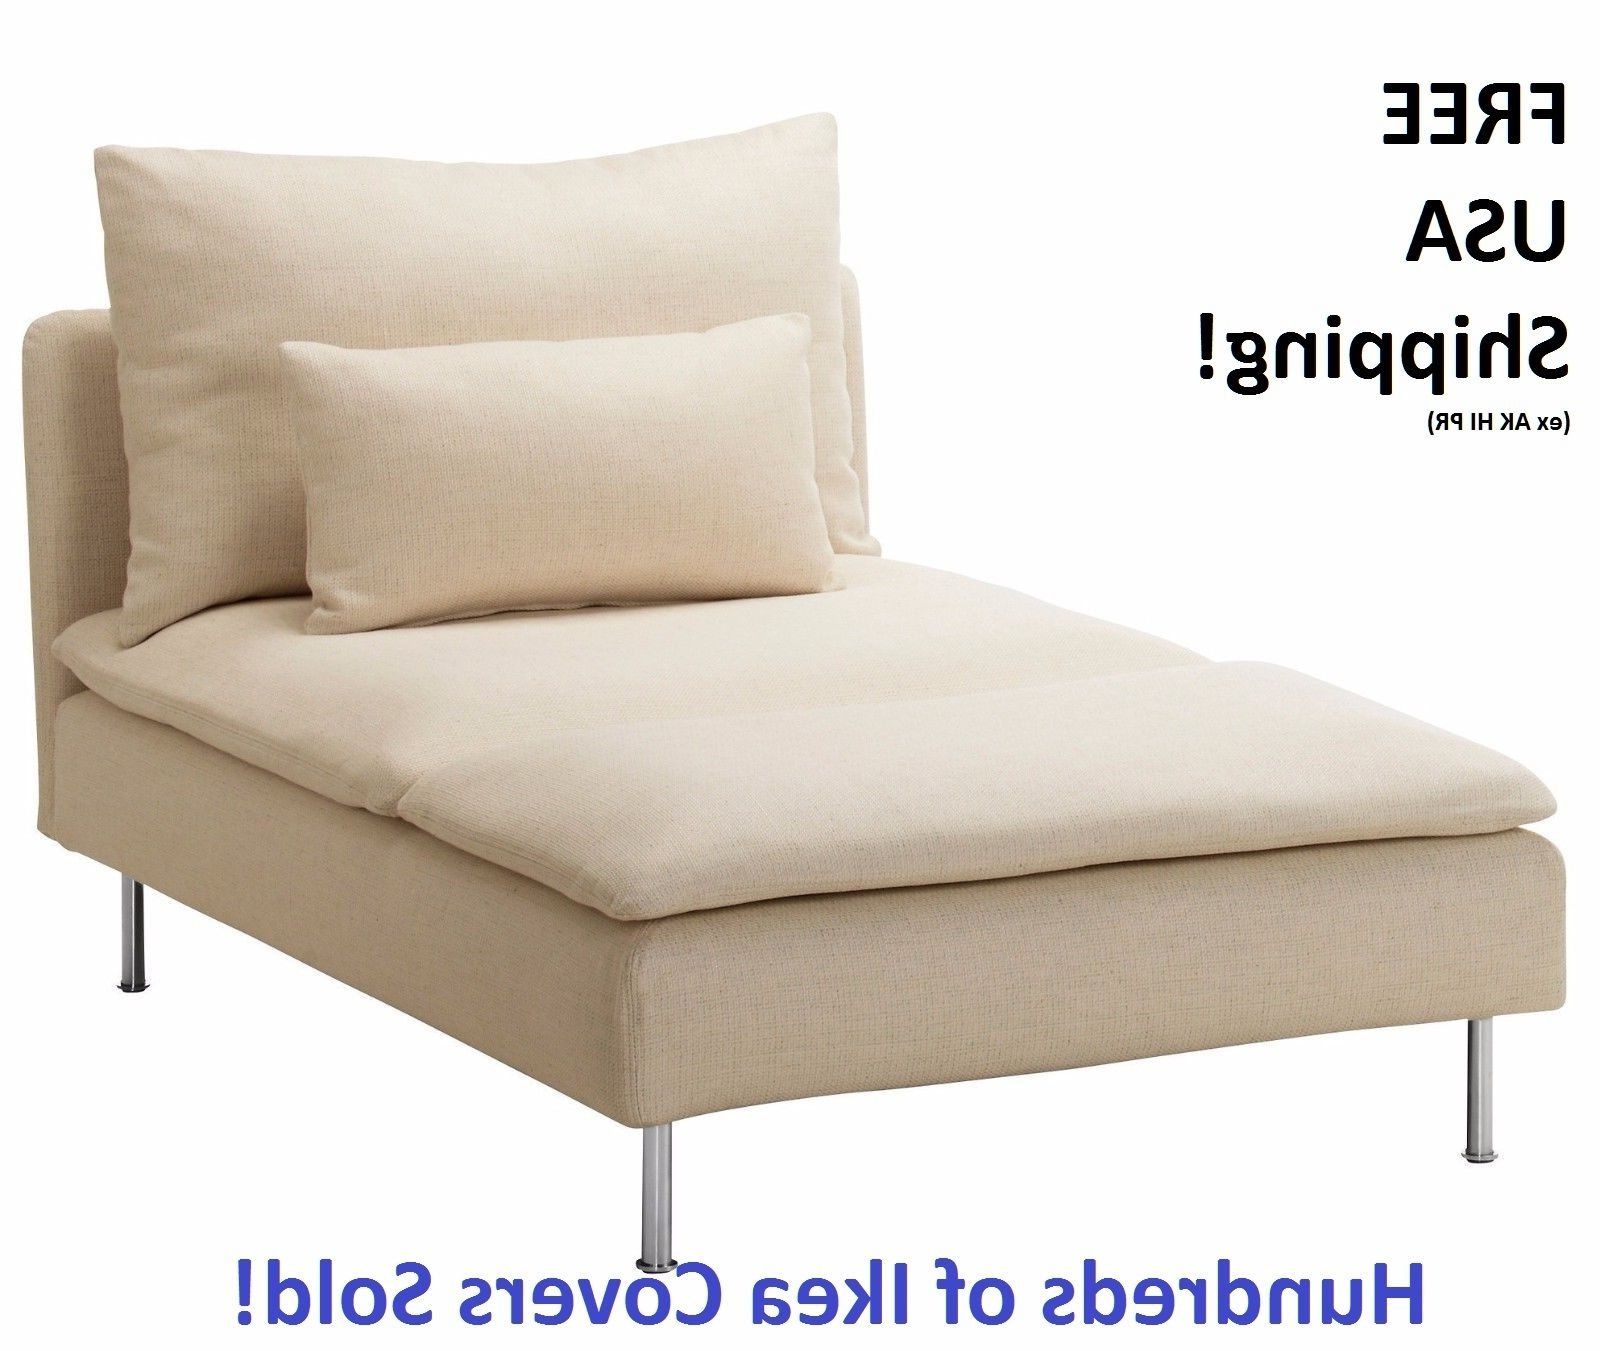 Chaise Lounge Slipcovers With Regard To Fashionable Chaise Lounge Slipcover (View 5 of 15)